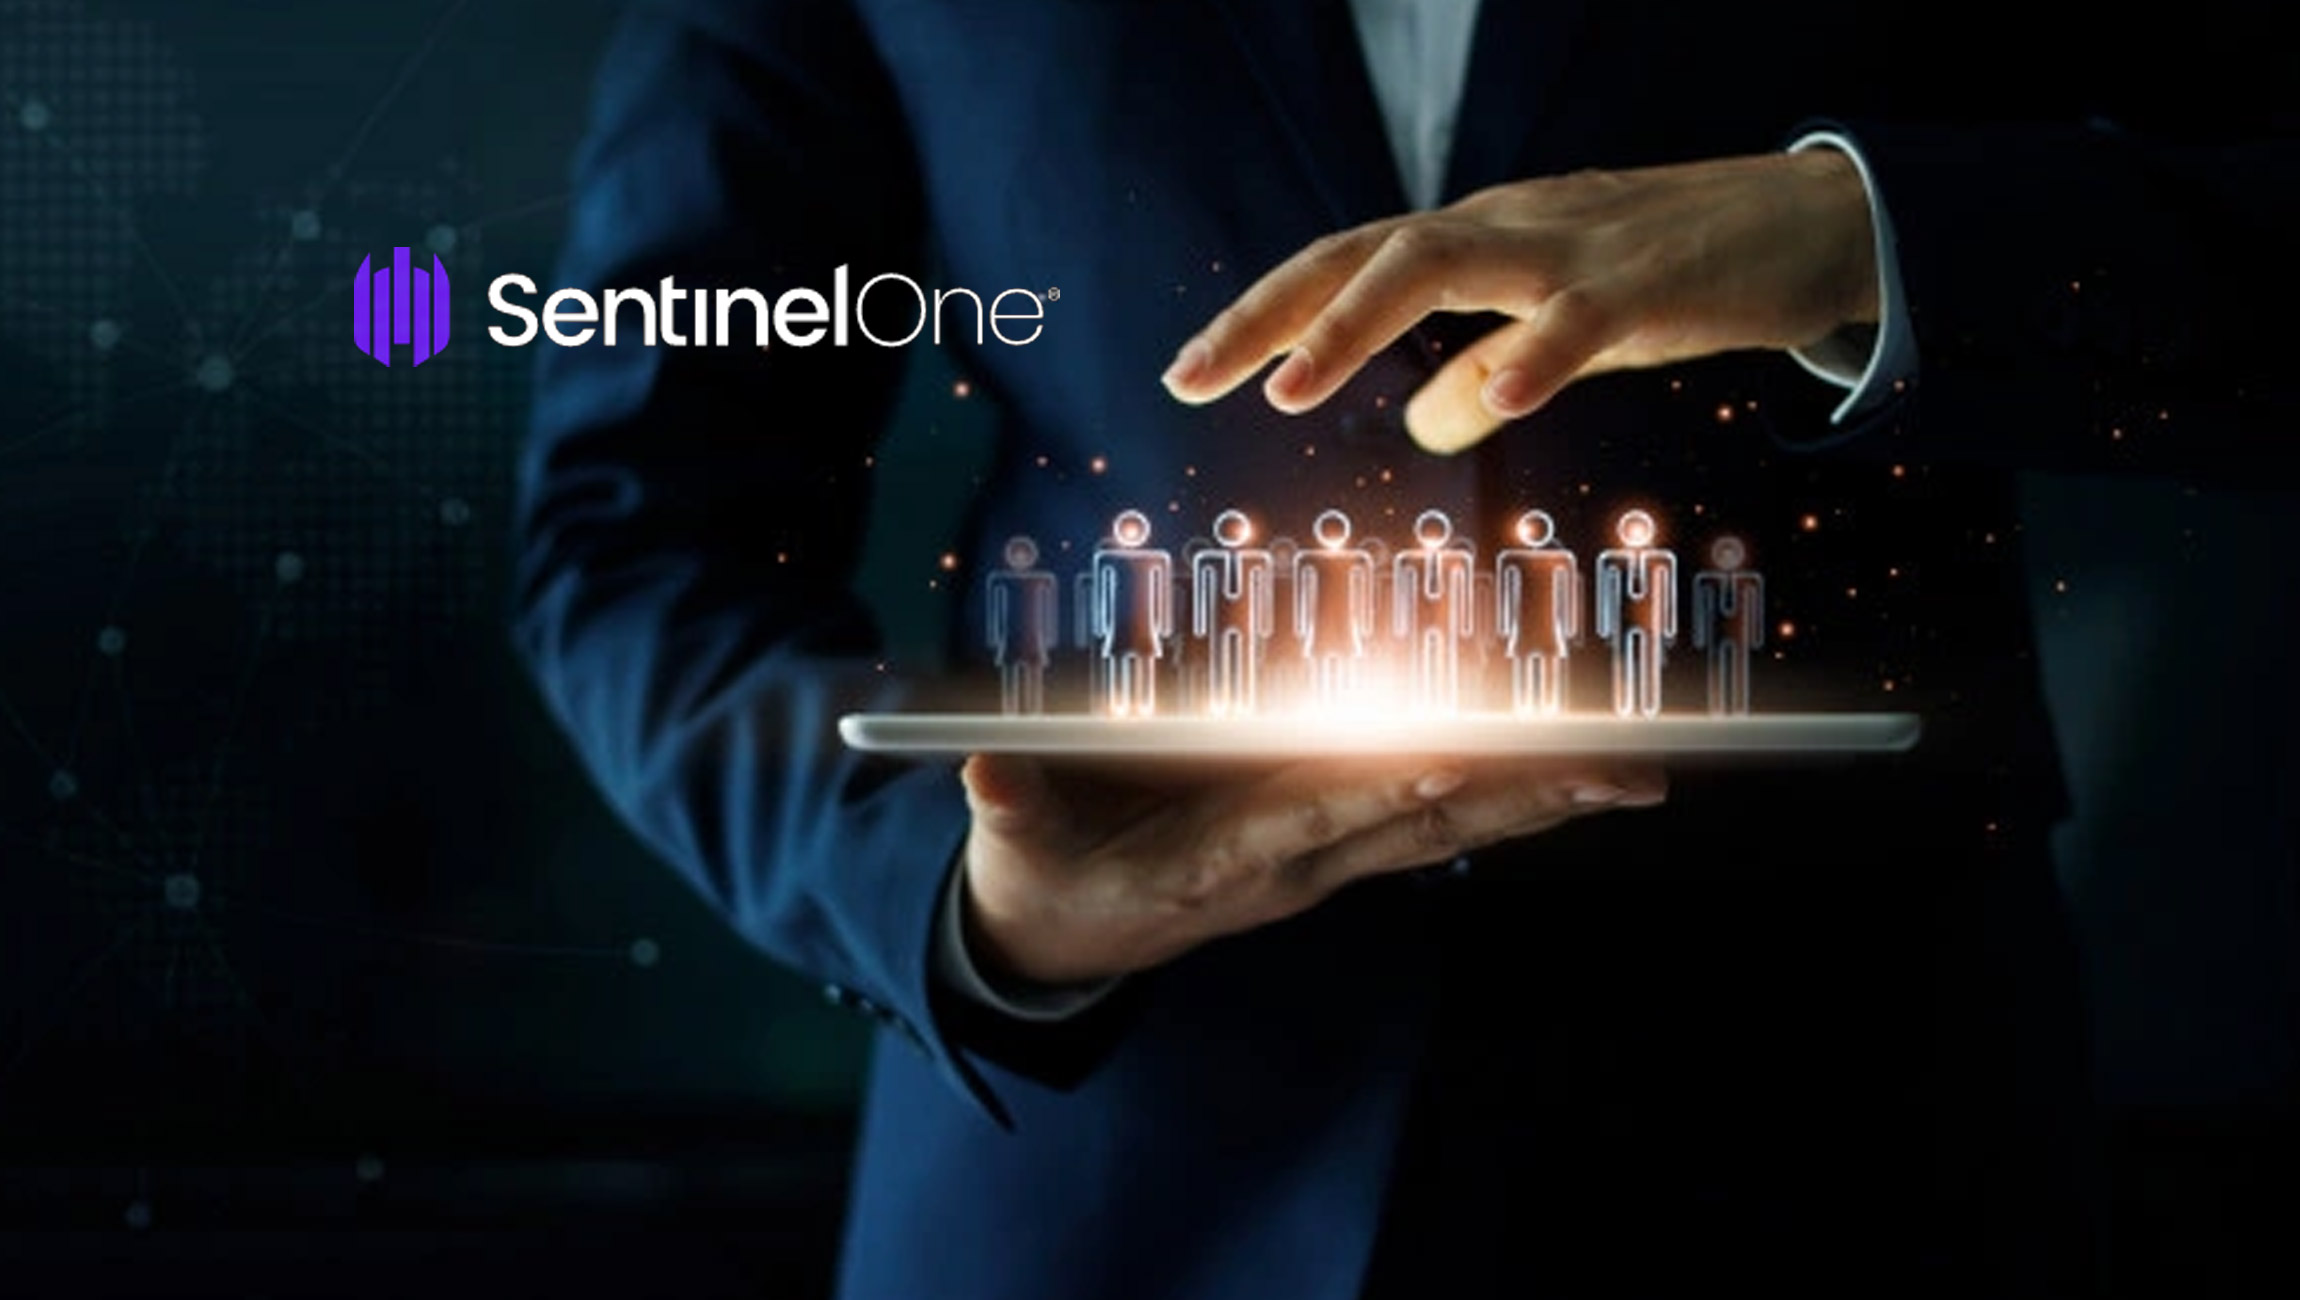 SentinelOne Announces Launch of Initial Public Offering